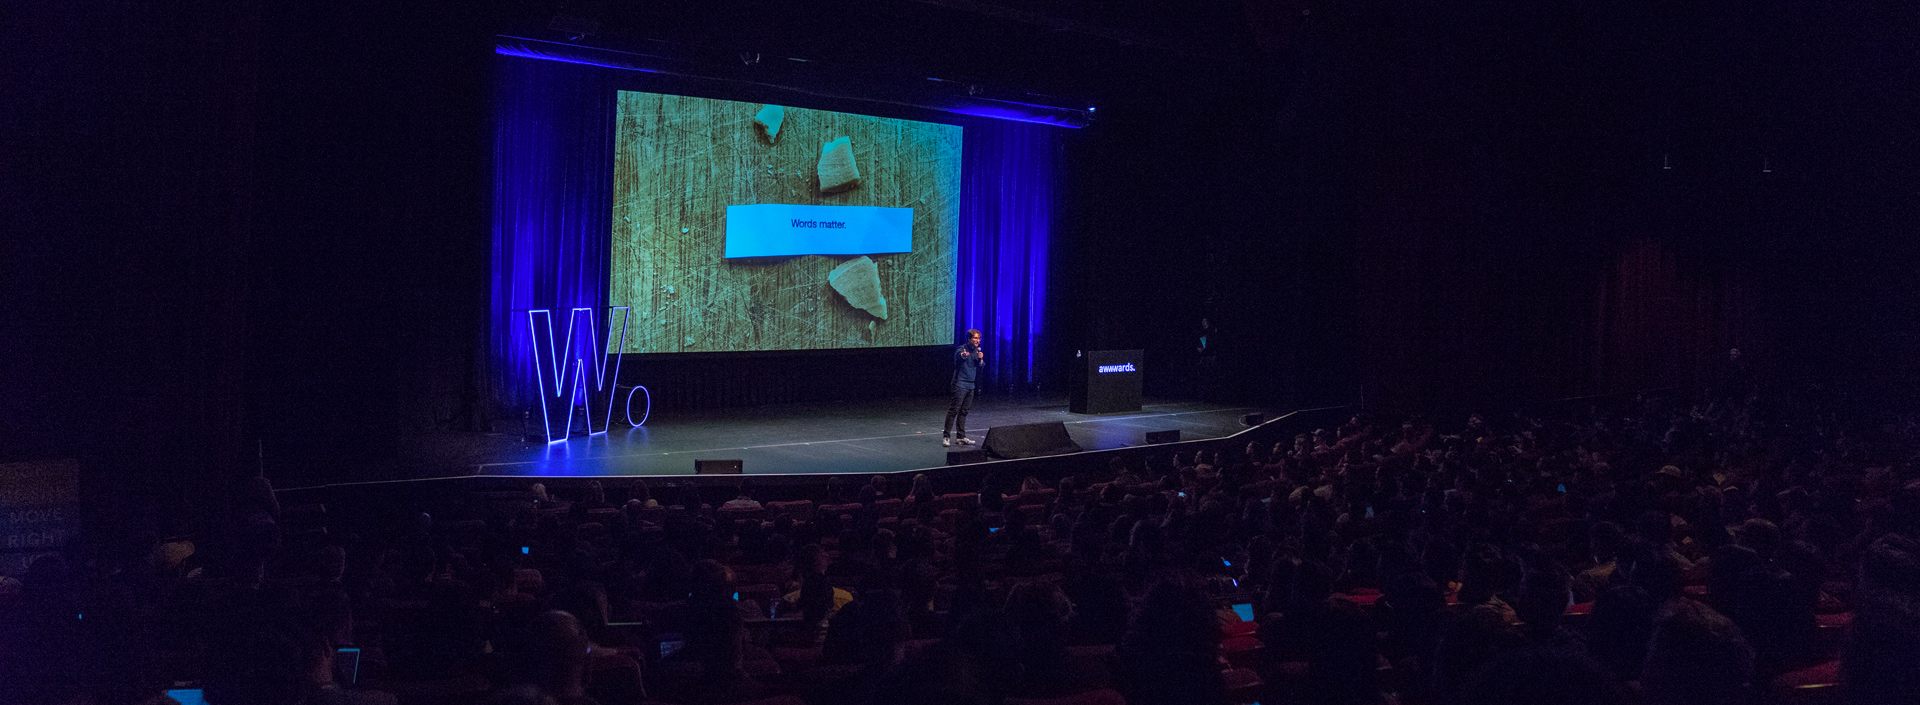 The next industry leading UX / Web Design conferences you should attend.